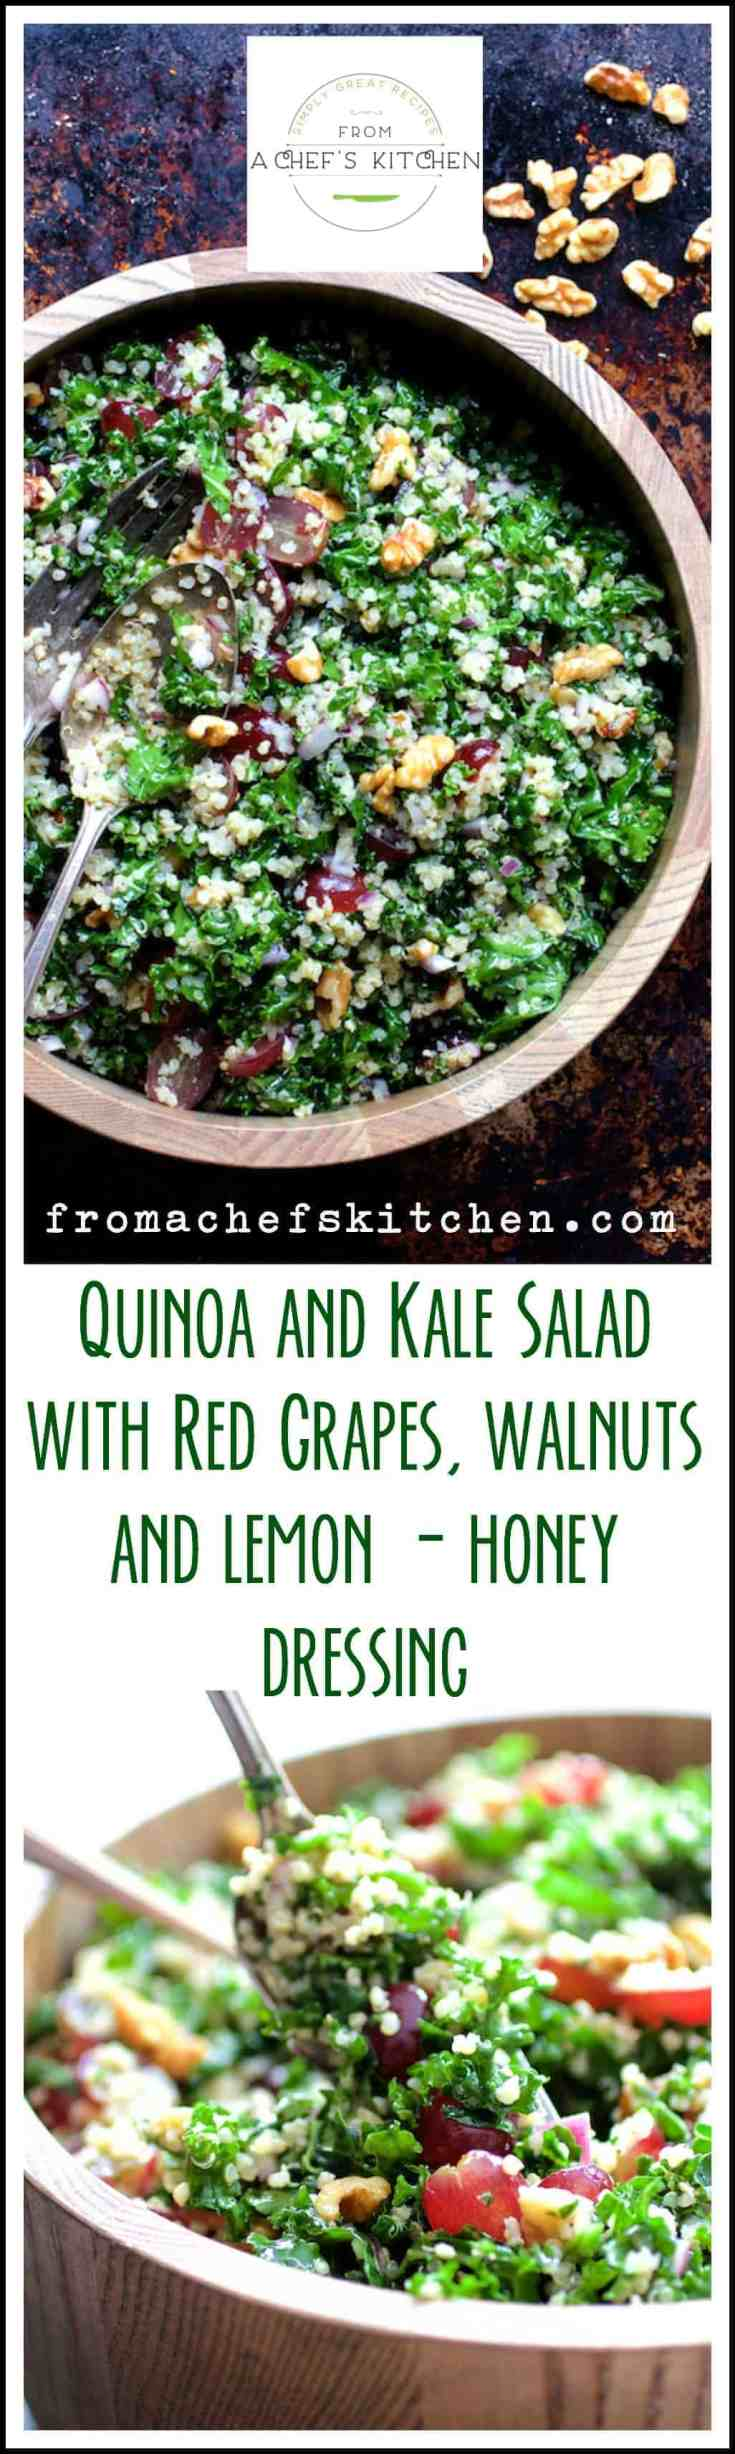 Quinoa and Kale Salad with Red Grapes, Walnuts and Lemon Honey Dressing is a delicious way to enjoy these popular superfoods!  It keeps for several days so it's perfect for meal prep and lunches for a busy week. #quinoa #quinoasalad #kale #kalesalad #vegetariansalad #vegansalad #vegan